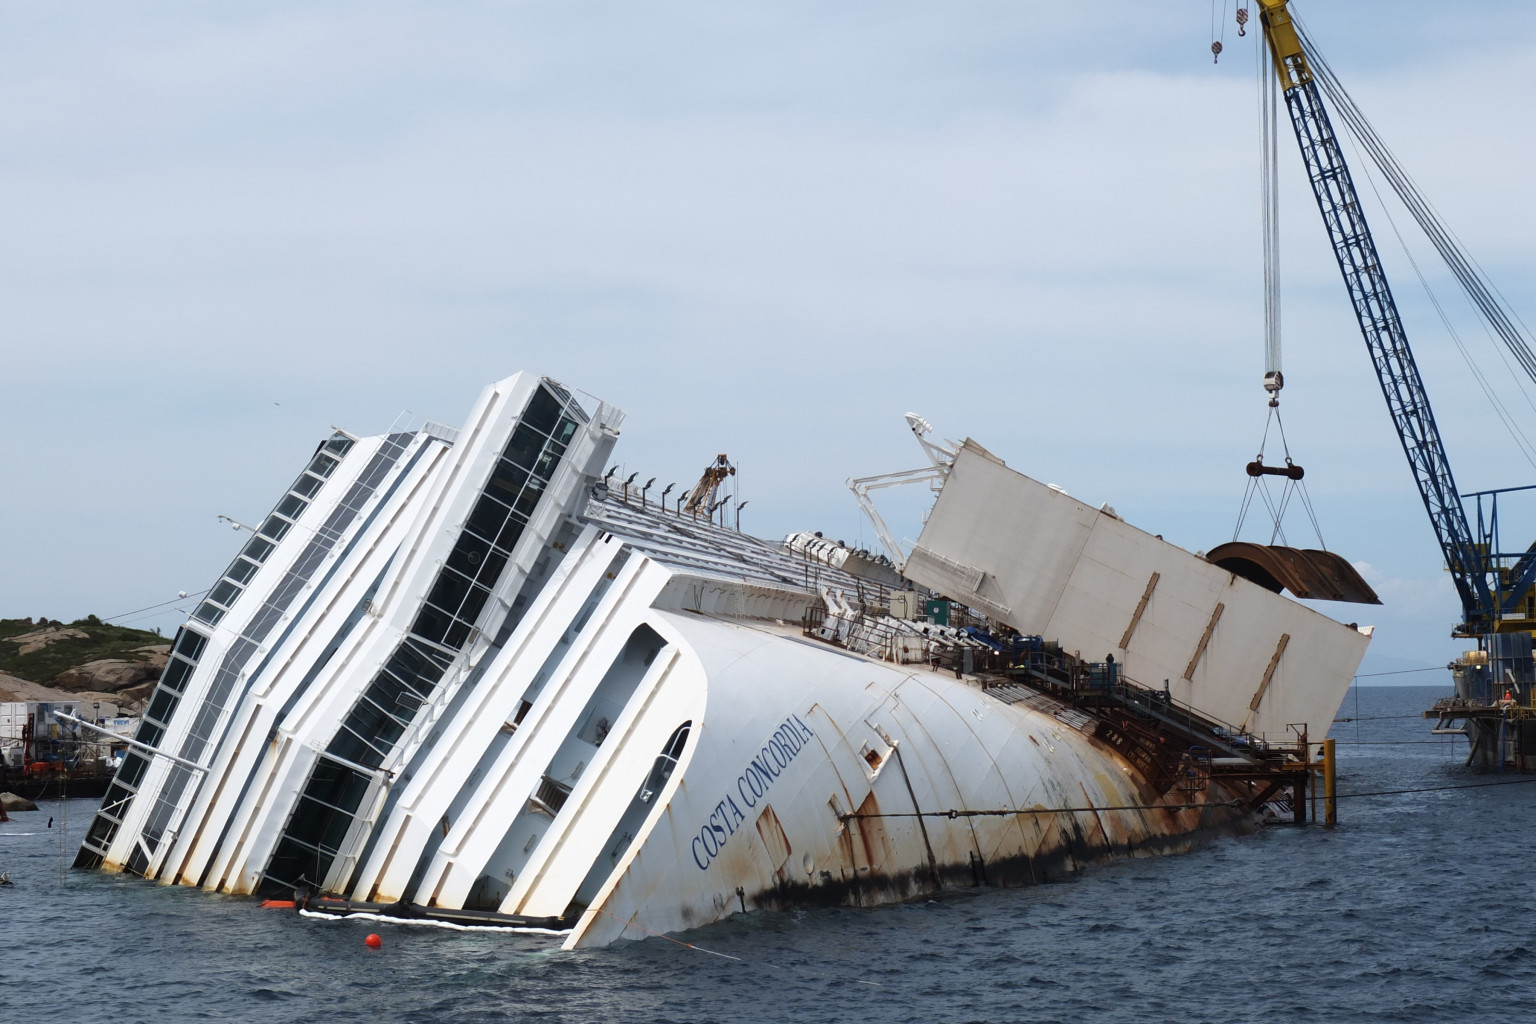 Costa Concordia Wreckage To Be Raised In September As